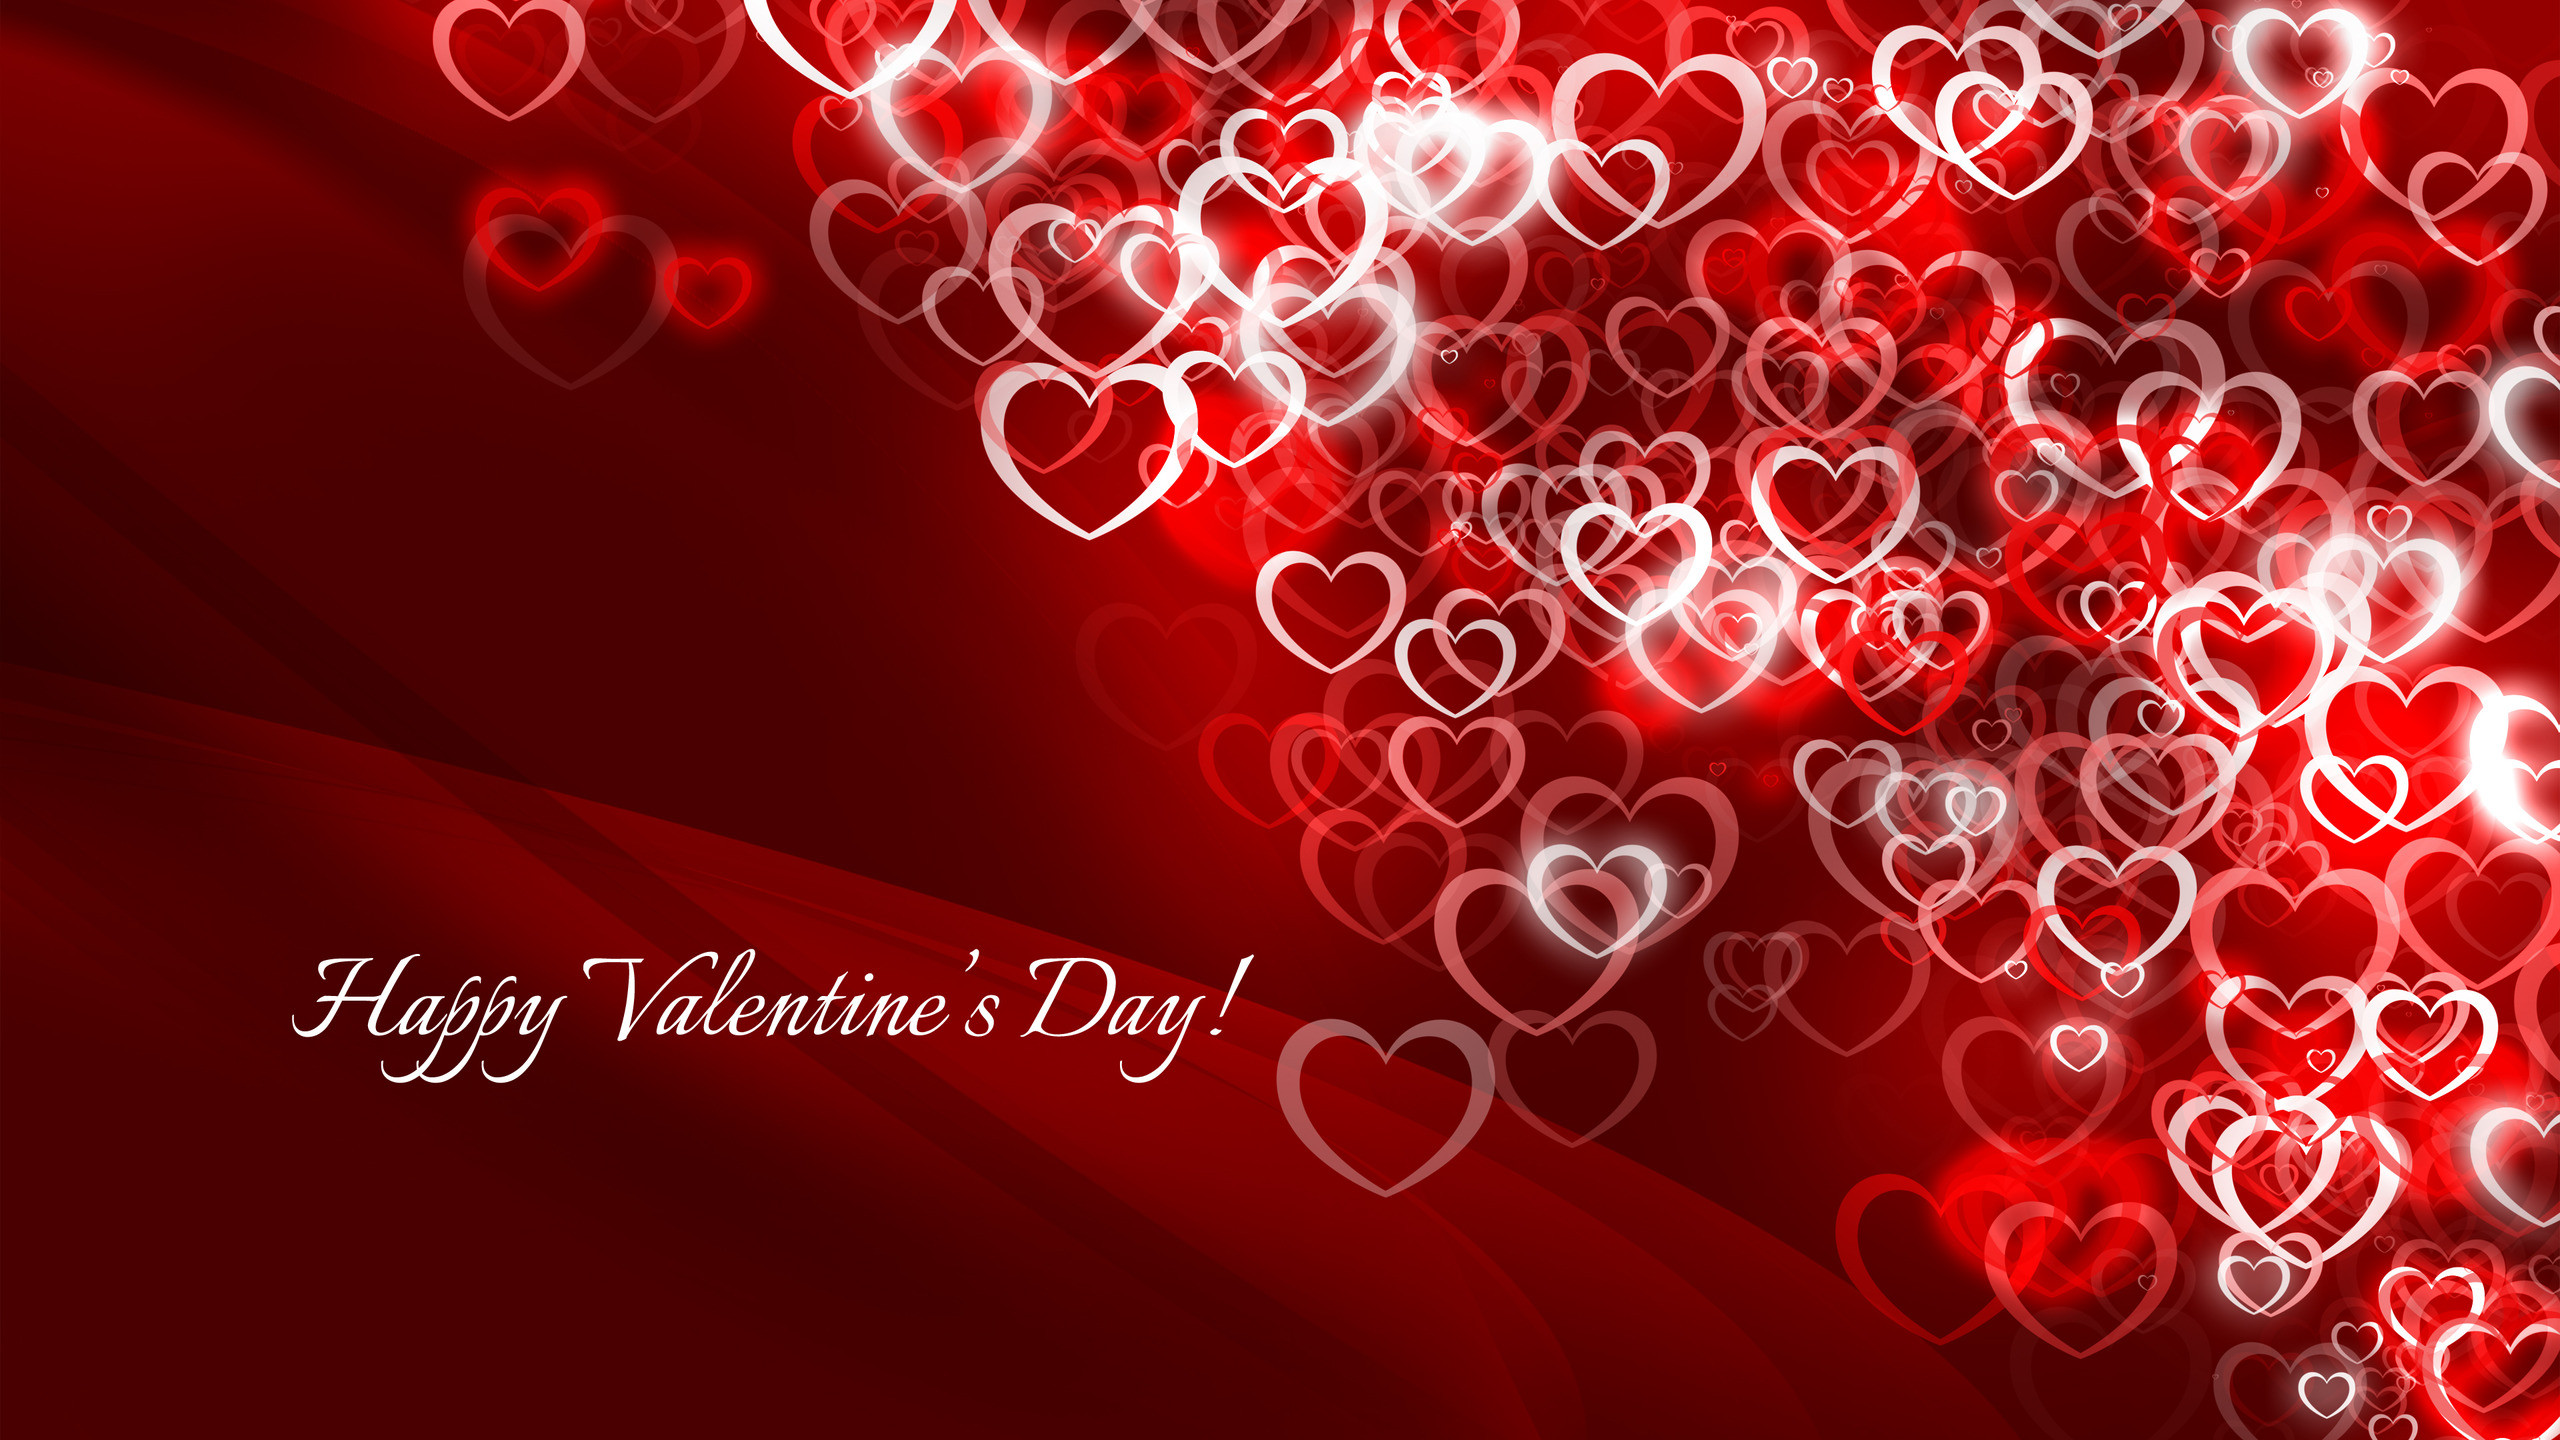 2560x1440 HD Wallpaper 1920x1200 Happy Valentines Day